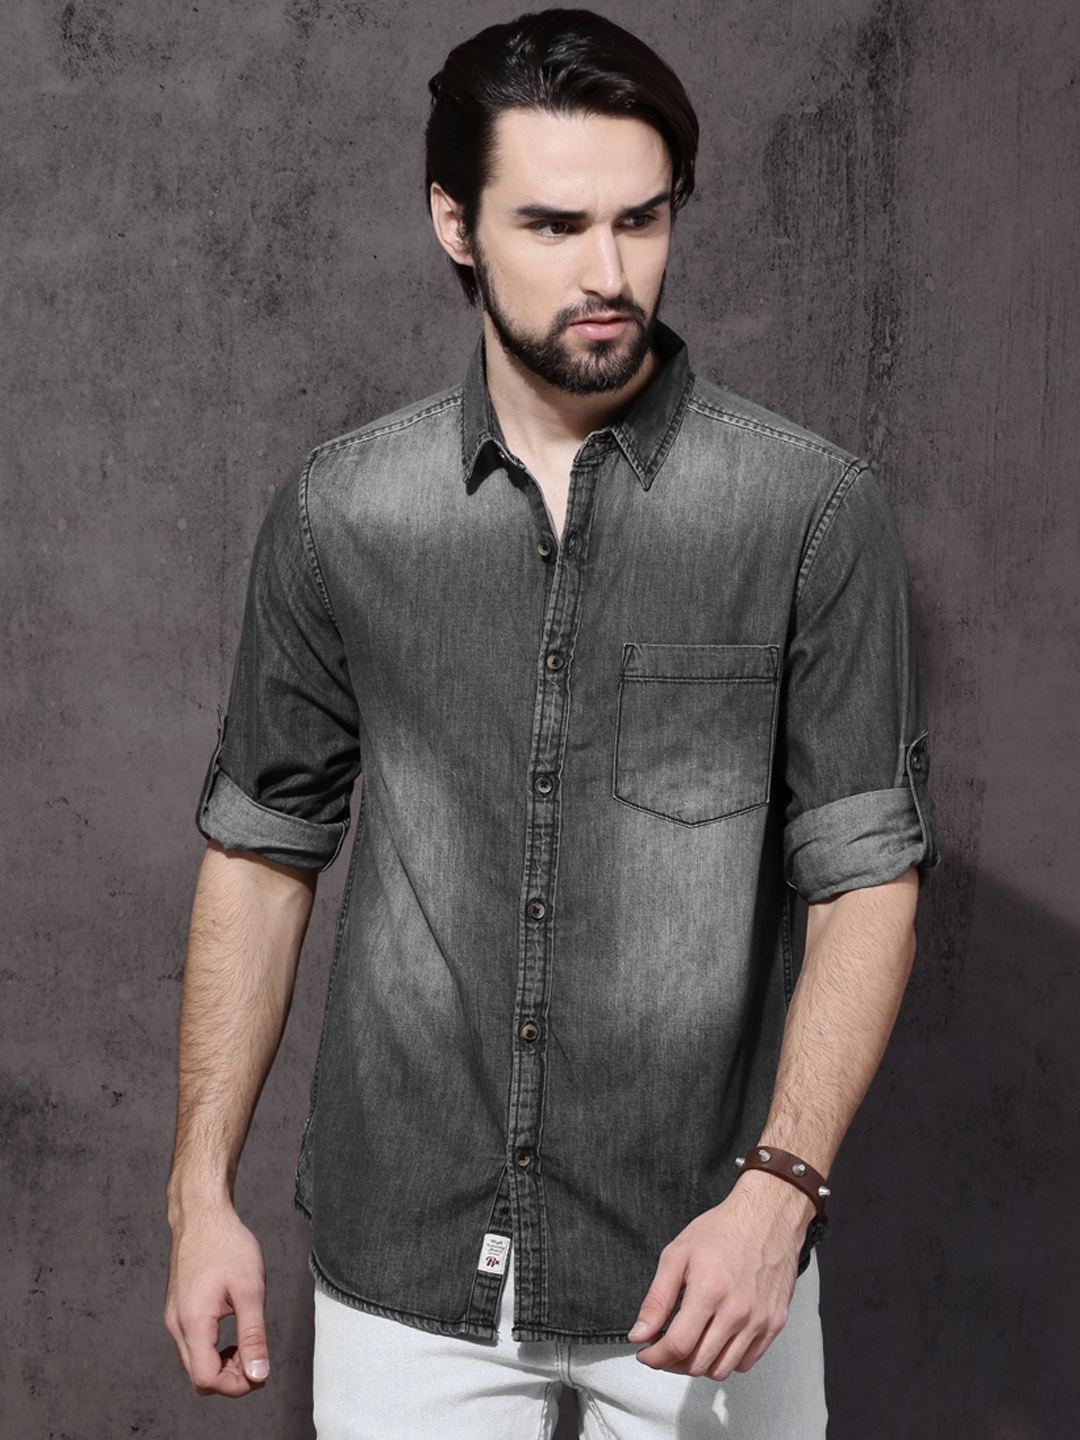 d0c137ac259 Buy Roadster Men Black Regular Fit Faded Denim Shirt - Shirts for ...